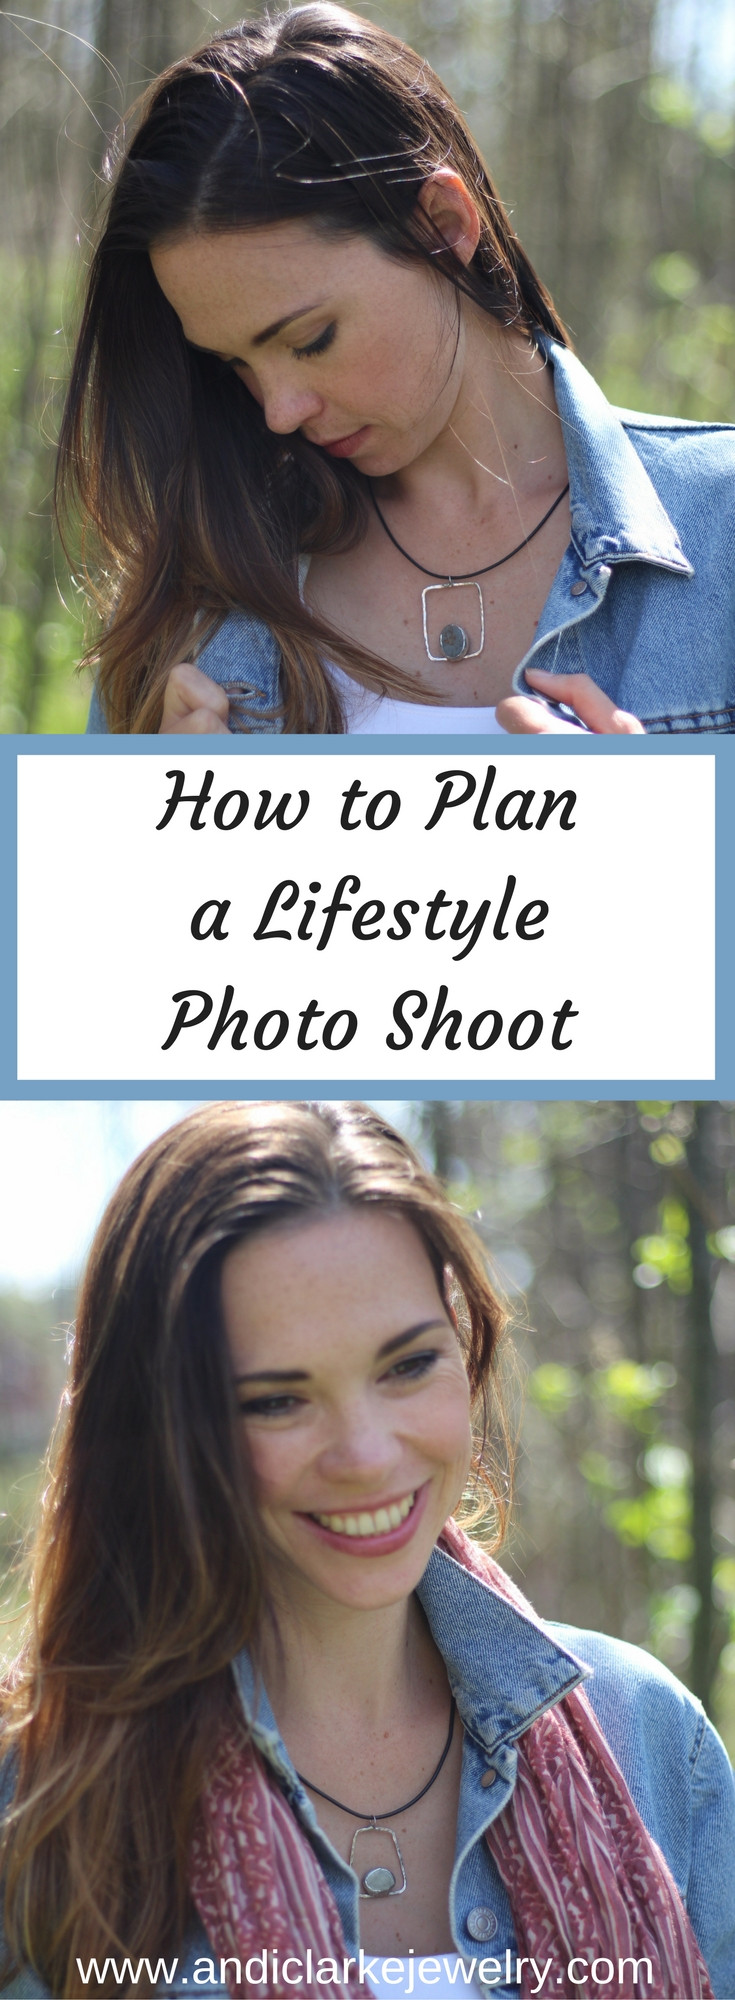 How to Plan a Life style photo shoot